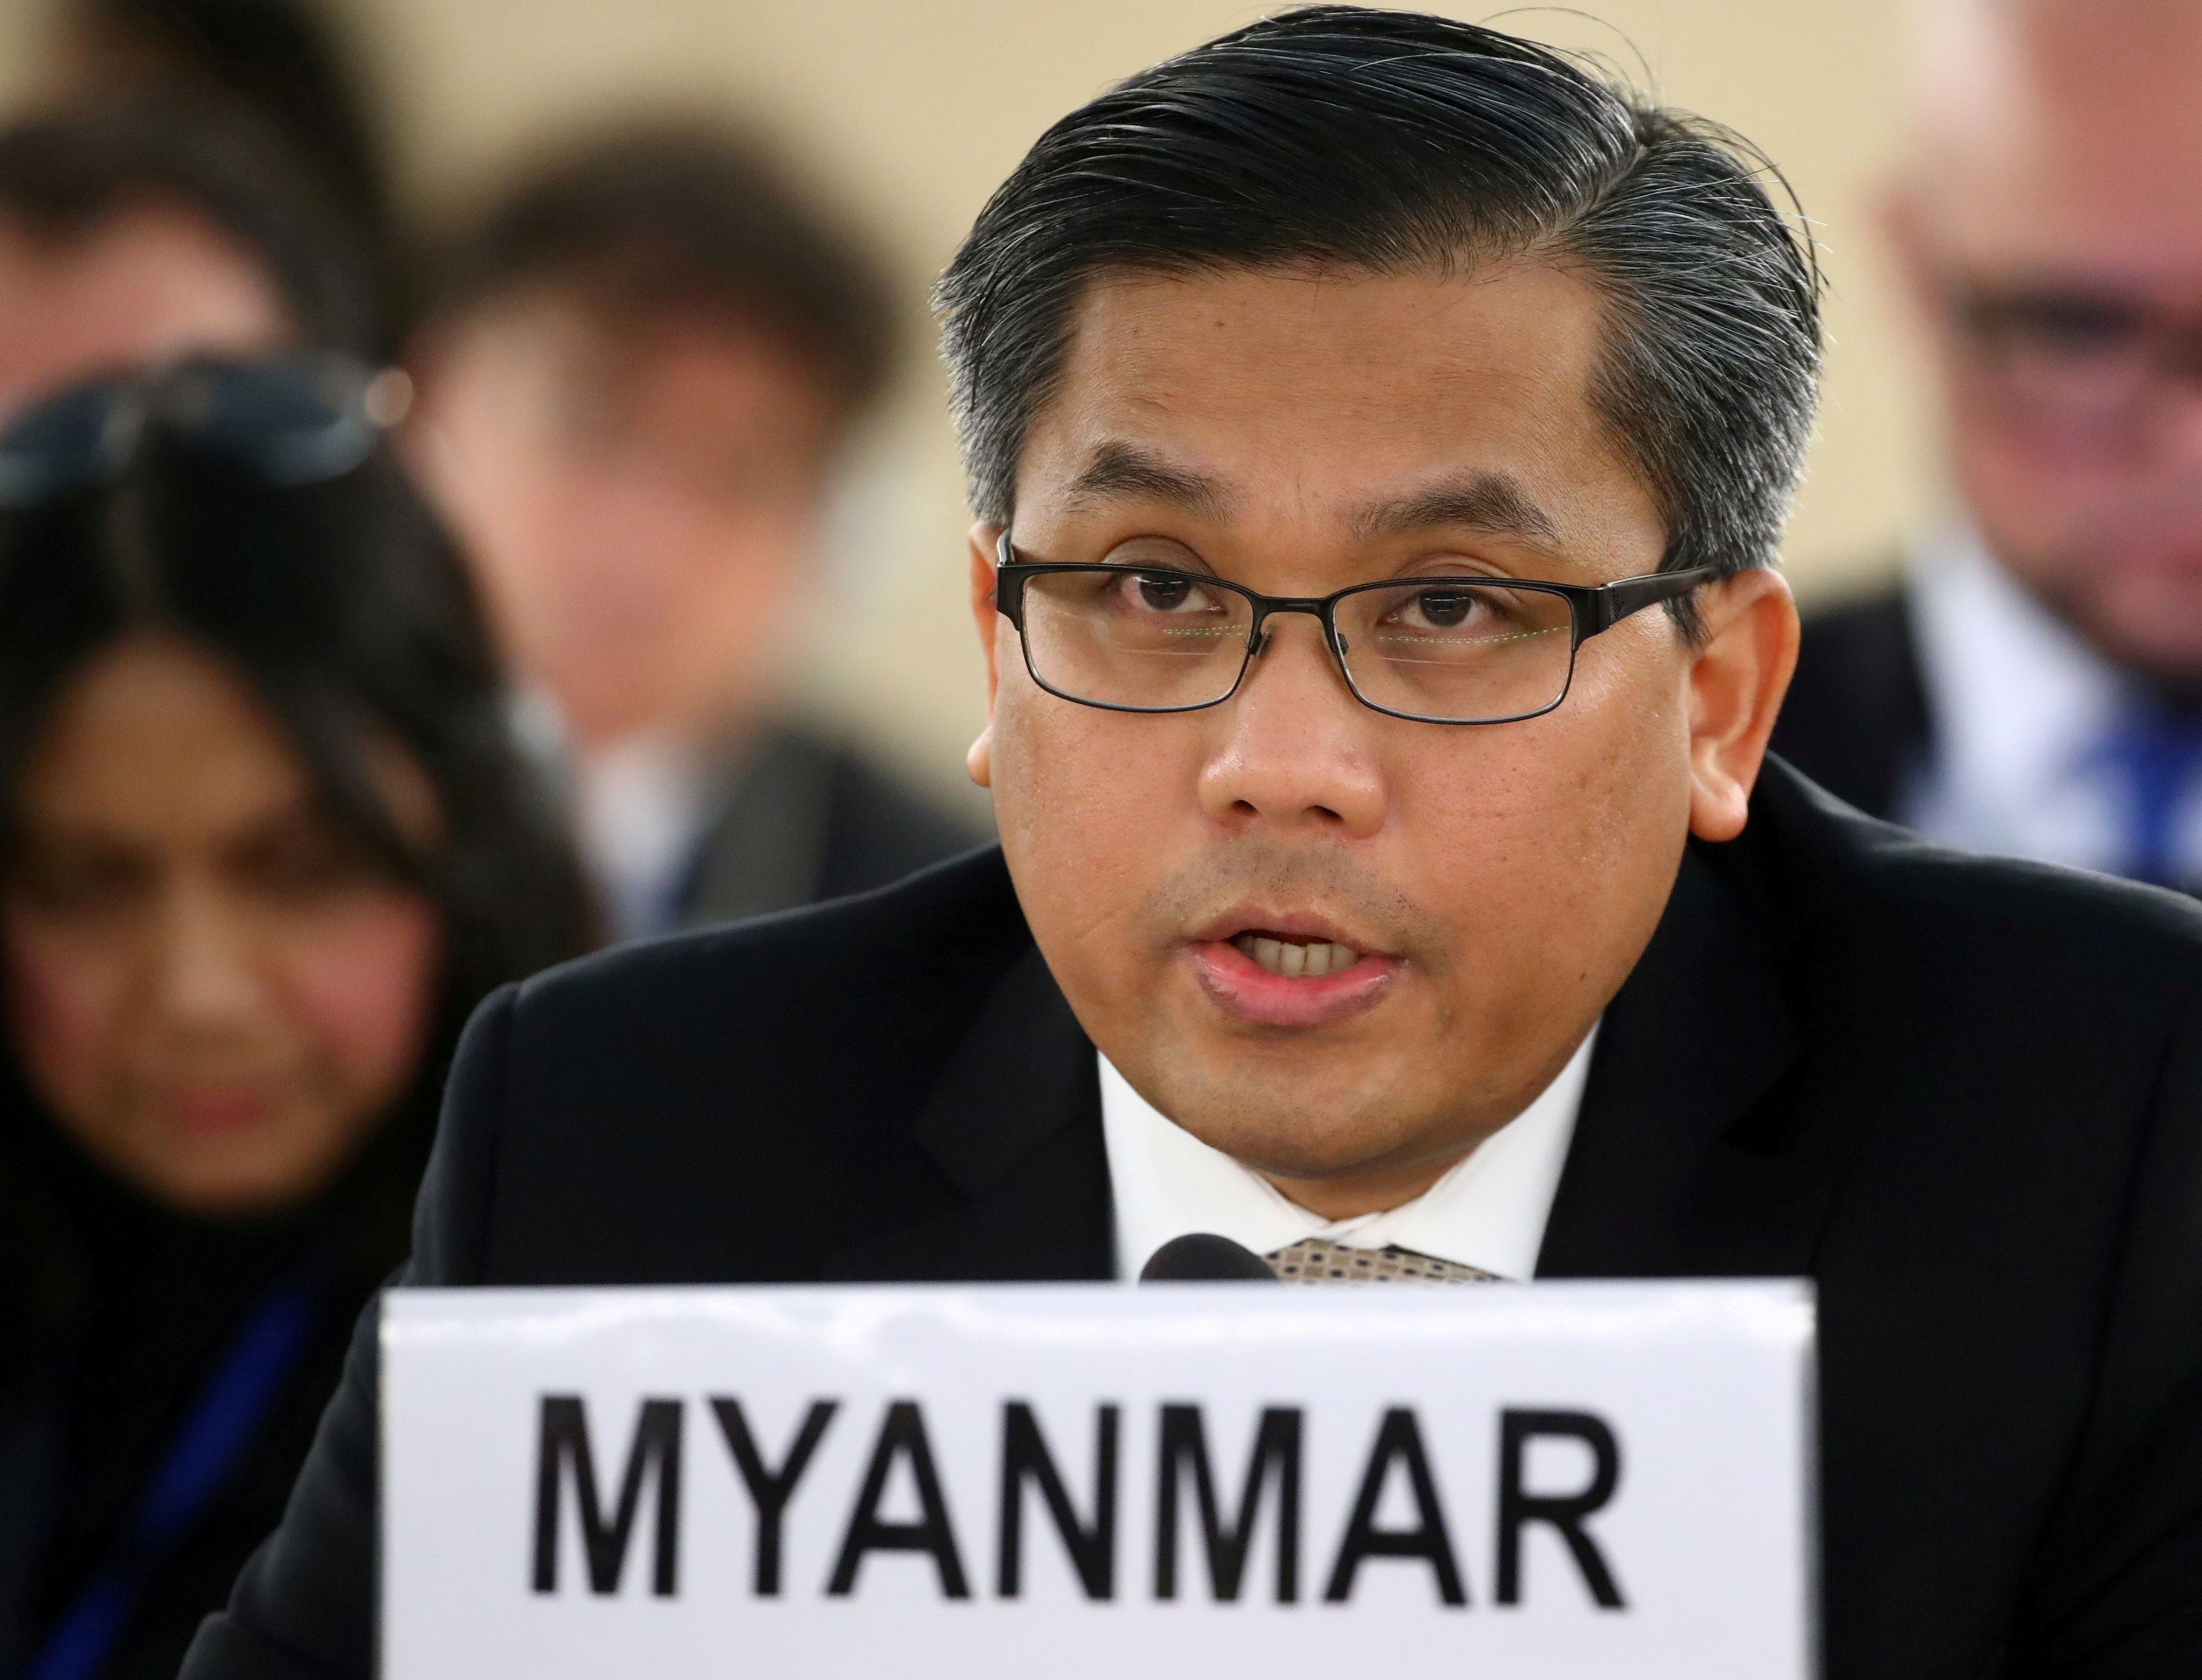 Myanmar's ambassador Kyaw Moe Tun addresses the Human Rights Council at the United Nations in Geneva, Switzerland, March 11, 2019. REUTERS/Denis Balibouse